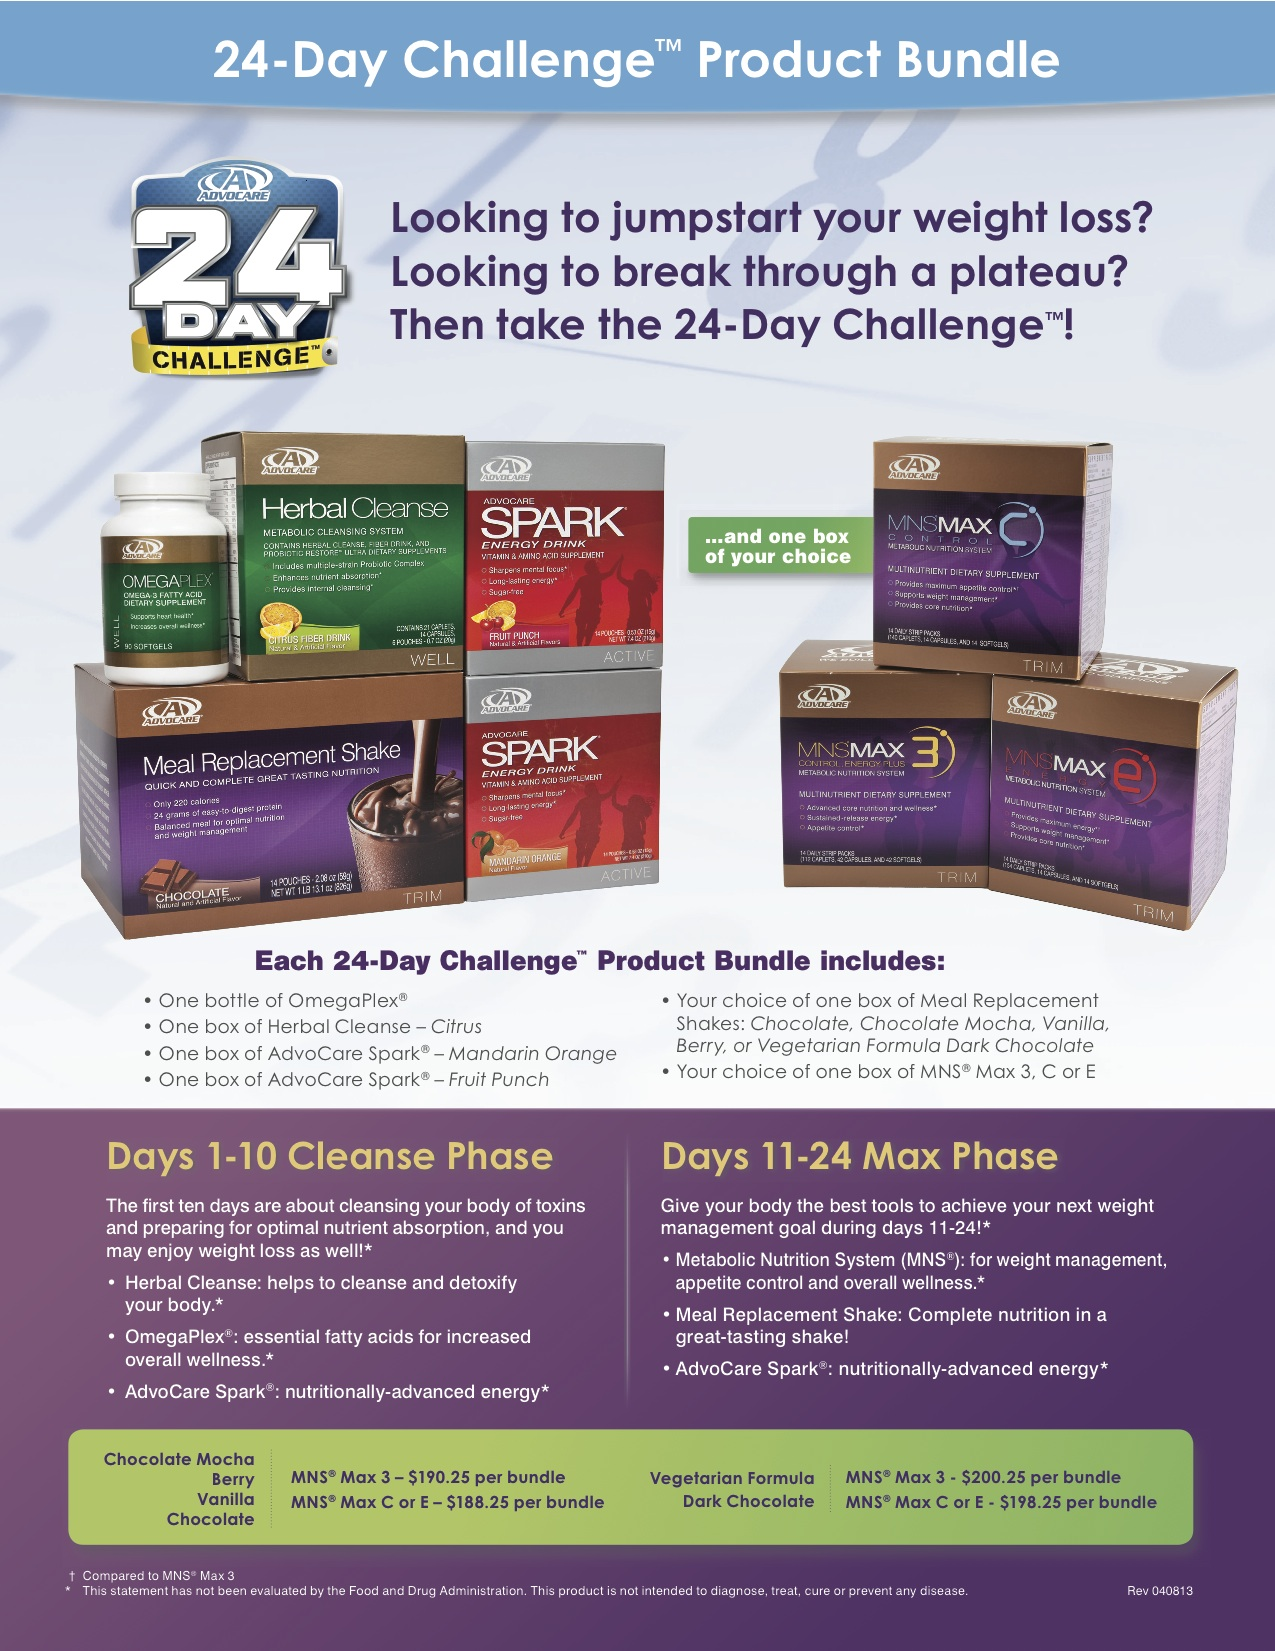 What S The Deal With Advocare